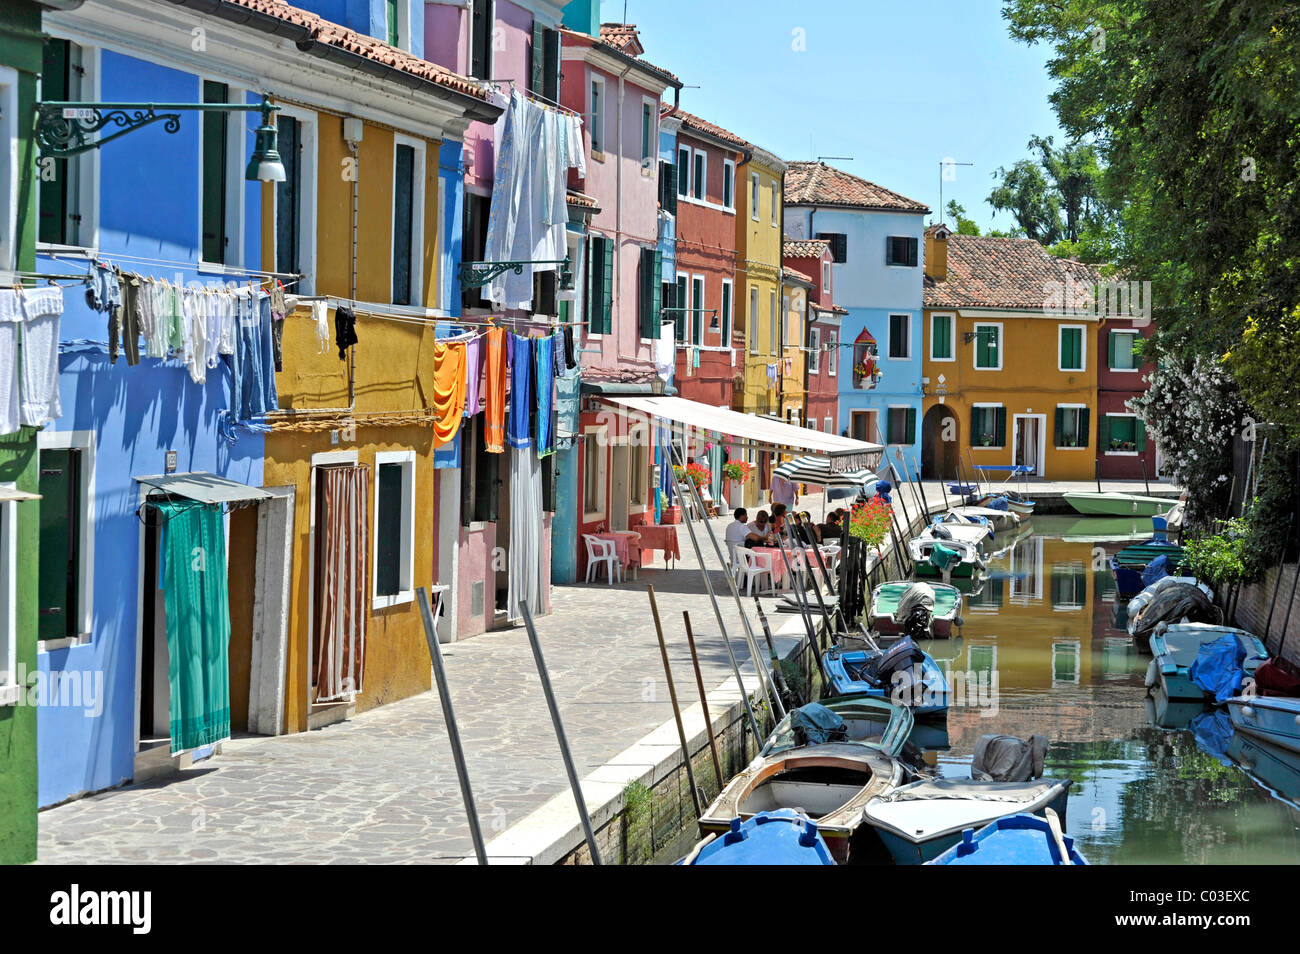 Canal with fishing boats in Burano, a village pub with tourists, fishermen's houses, Burano Island, Venice Lagoon, - Stock Image